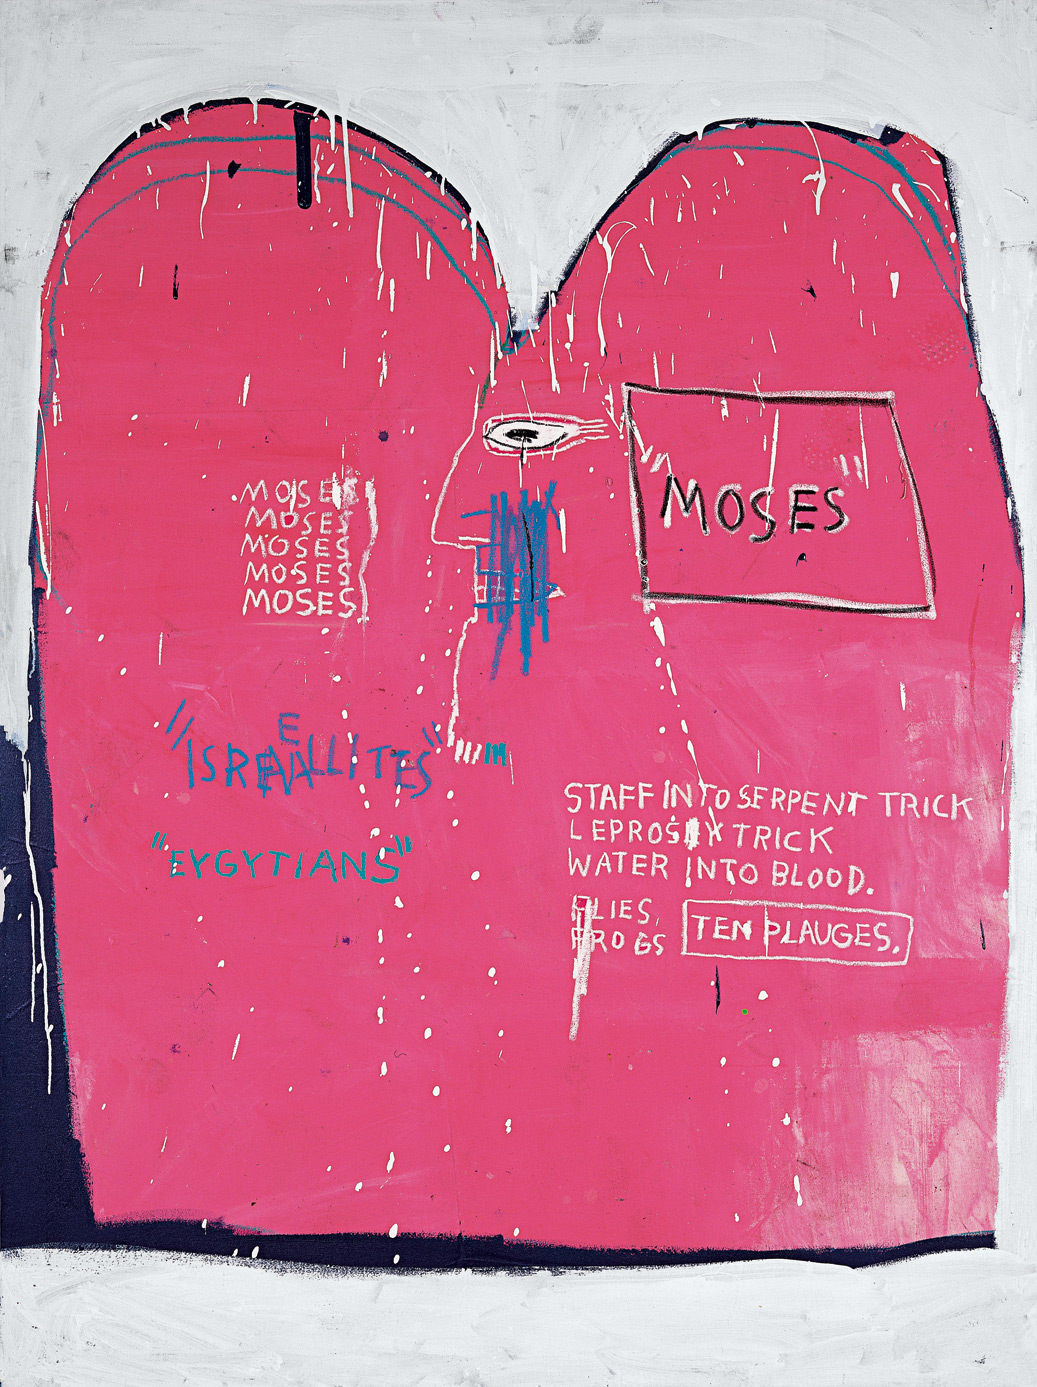 Moses and the egyptians | Jean-Michel Basquiat | Guggenheim Bilbao Museoa